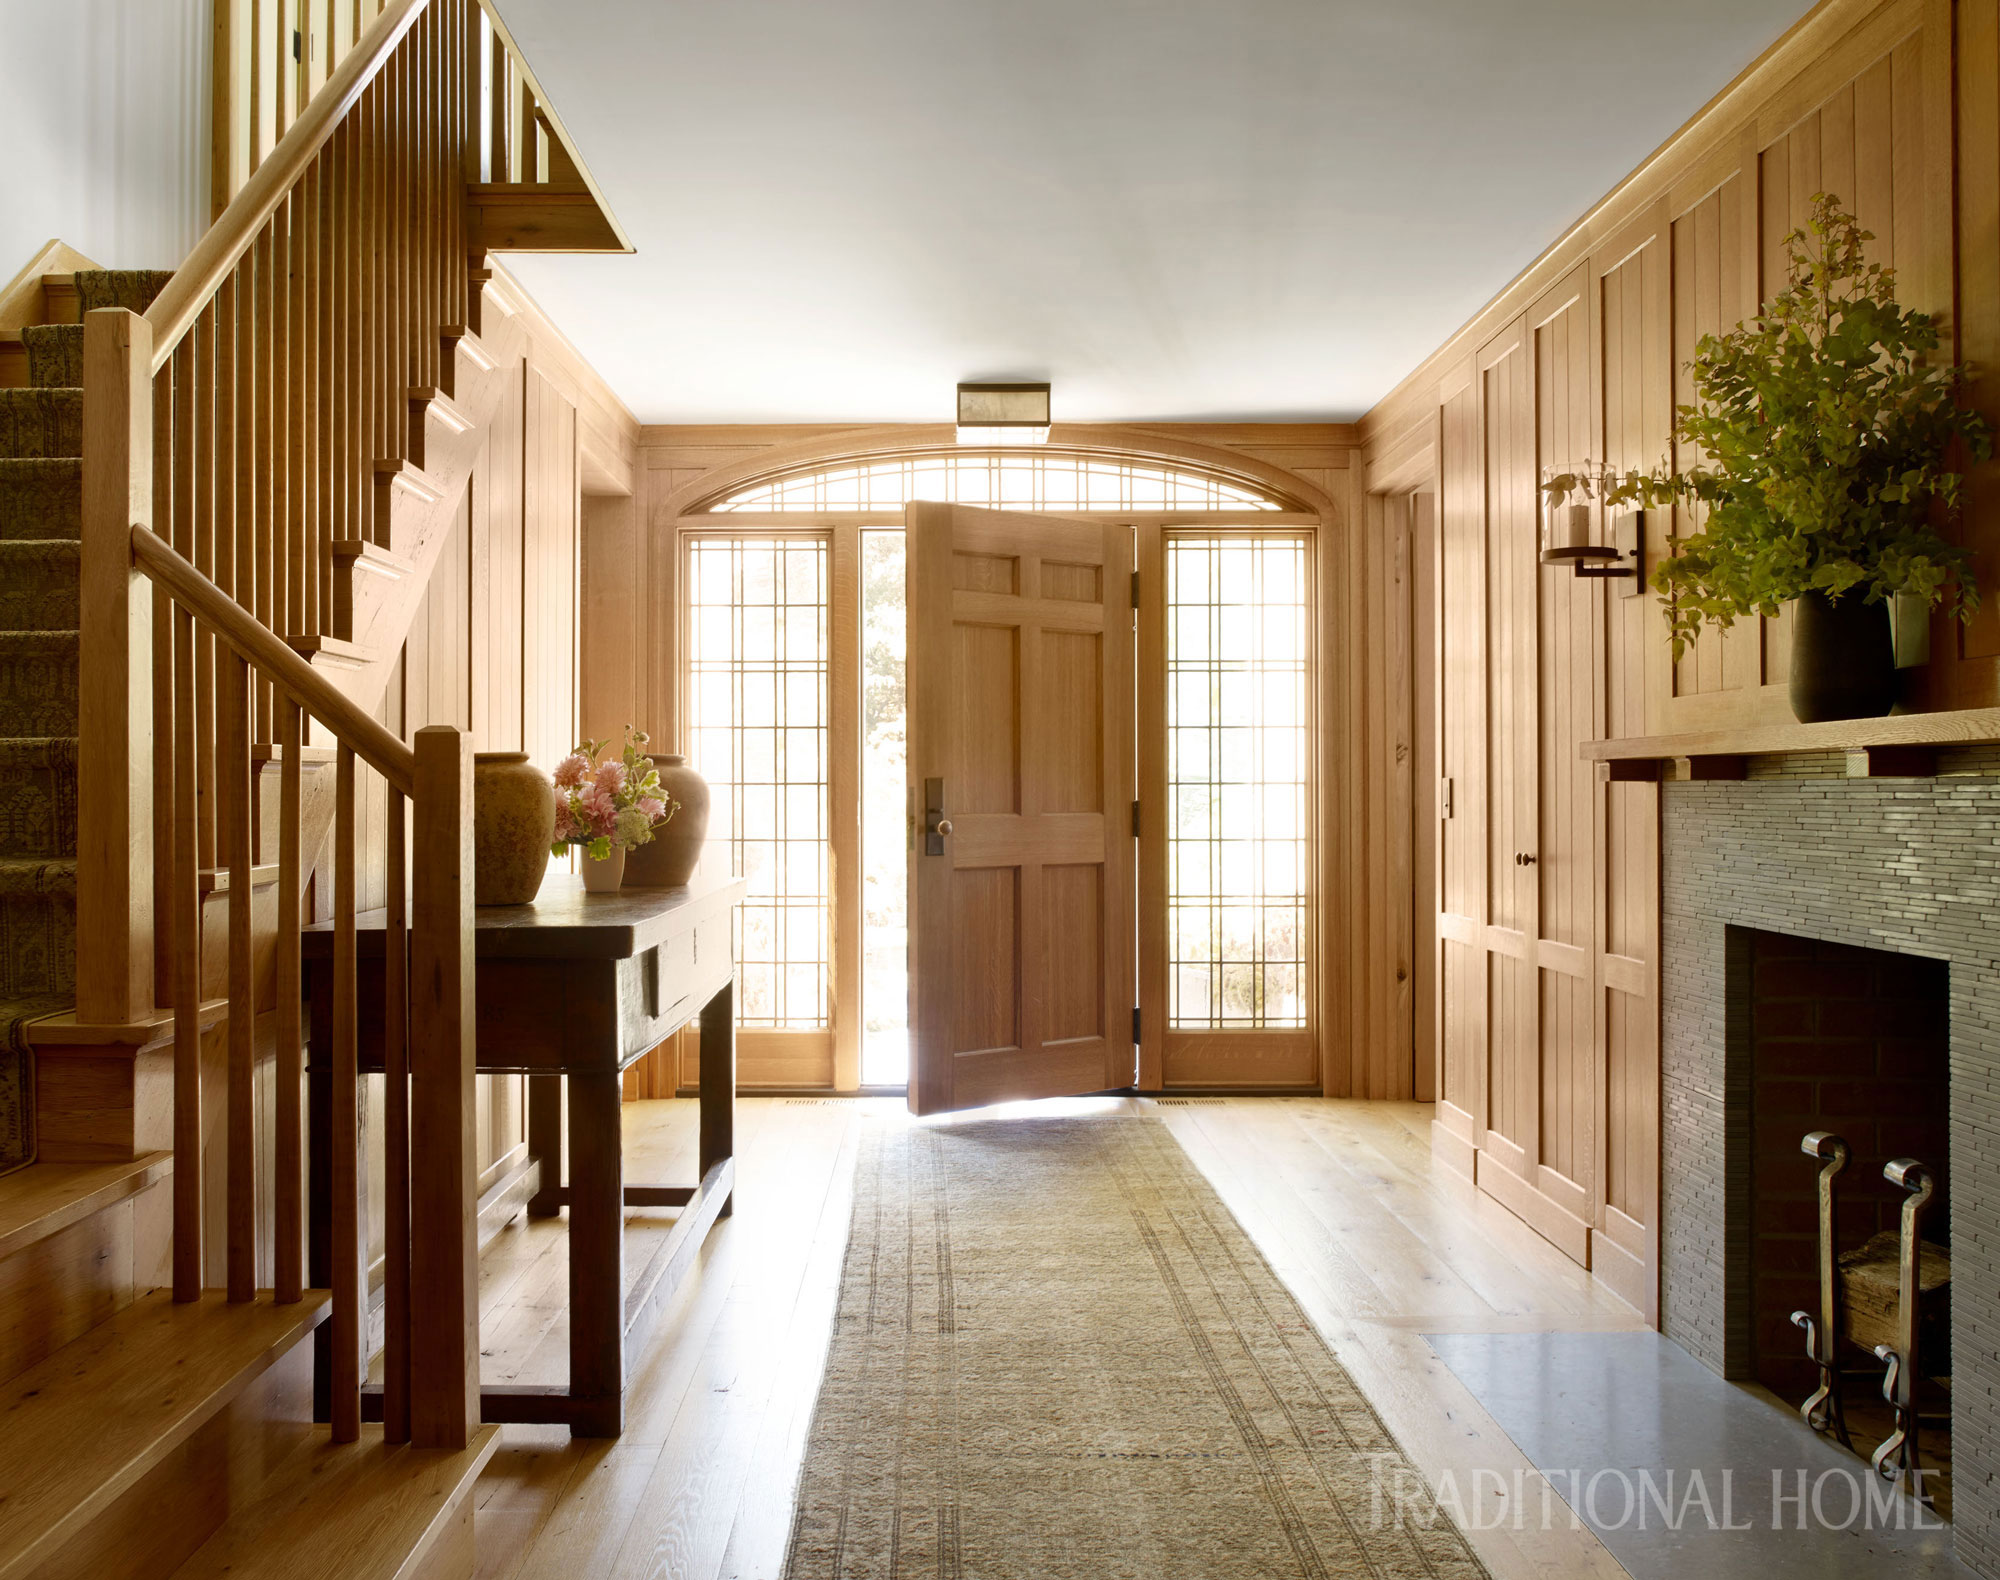 Charming Connecticut Home | Traditional Home